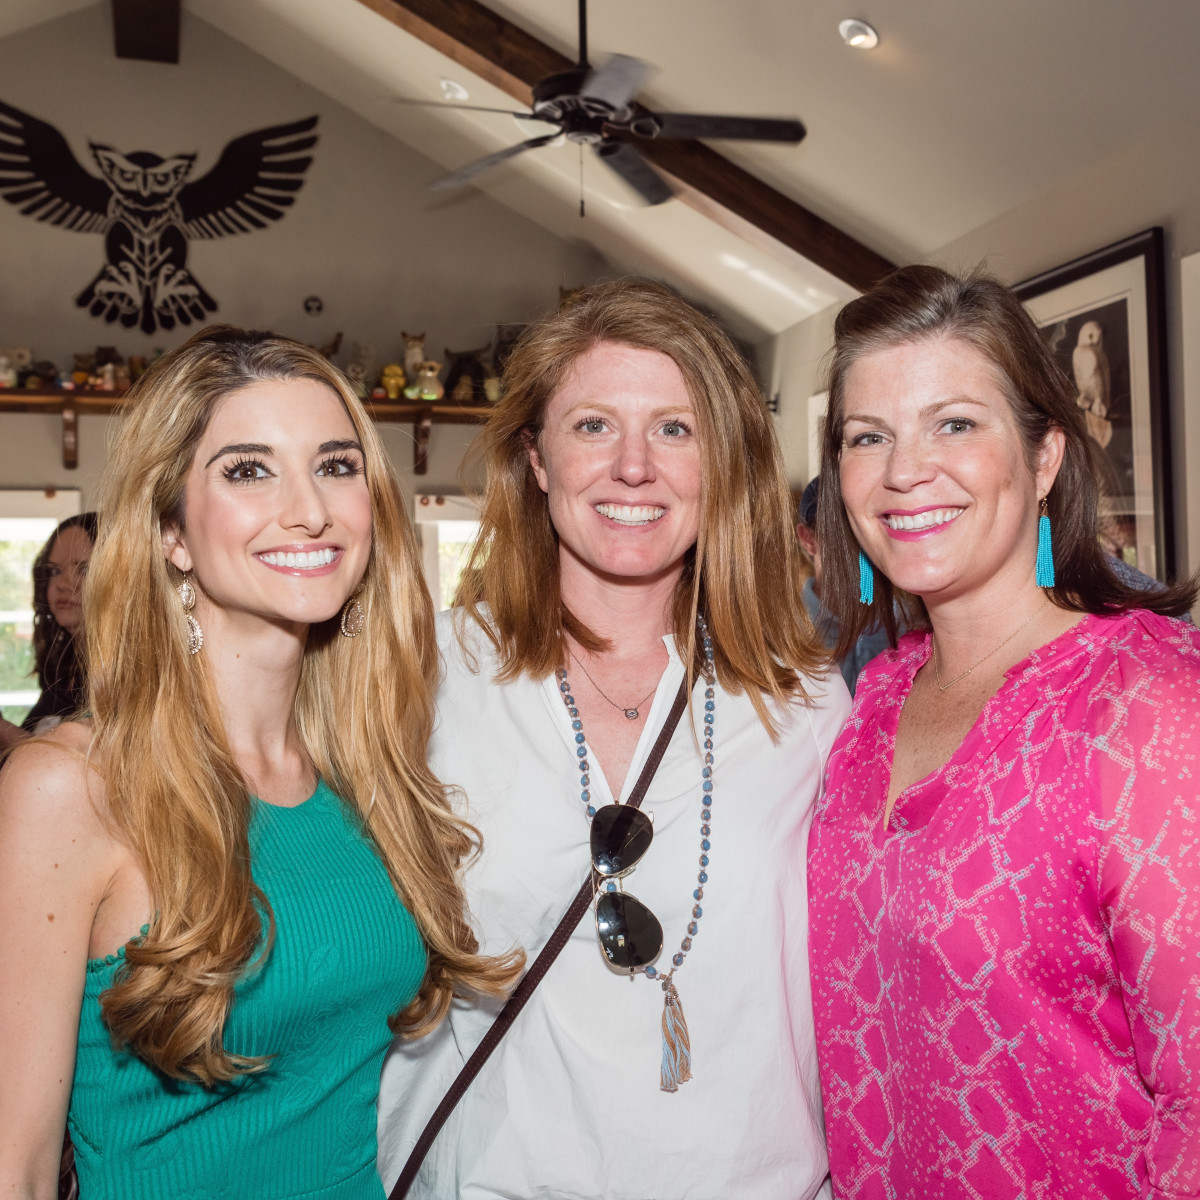 Lauren_Granello, Susan_Oehl, Lauren_Levicki_Courville at Women of Wardrobe spring fling 2017